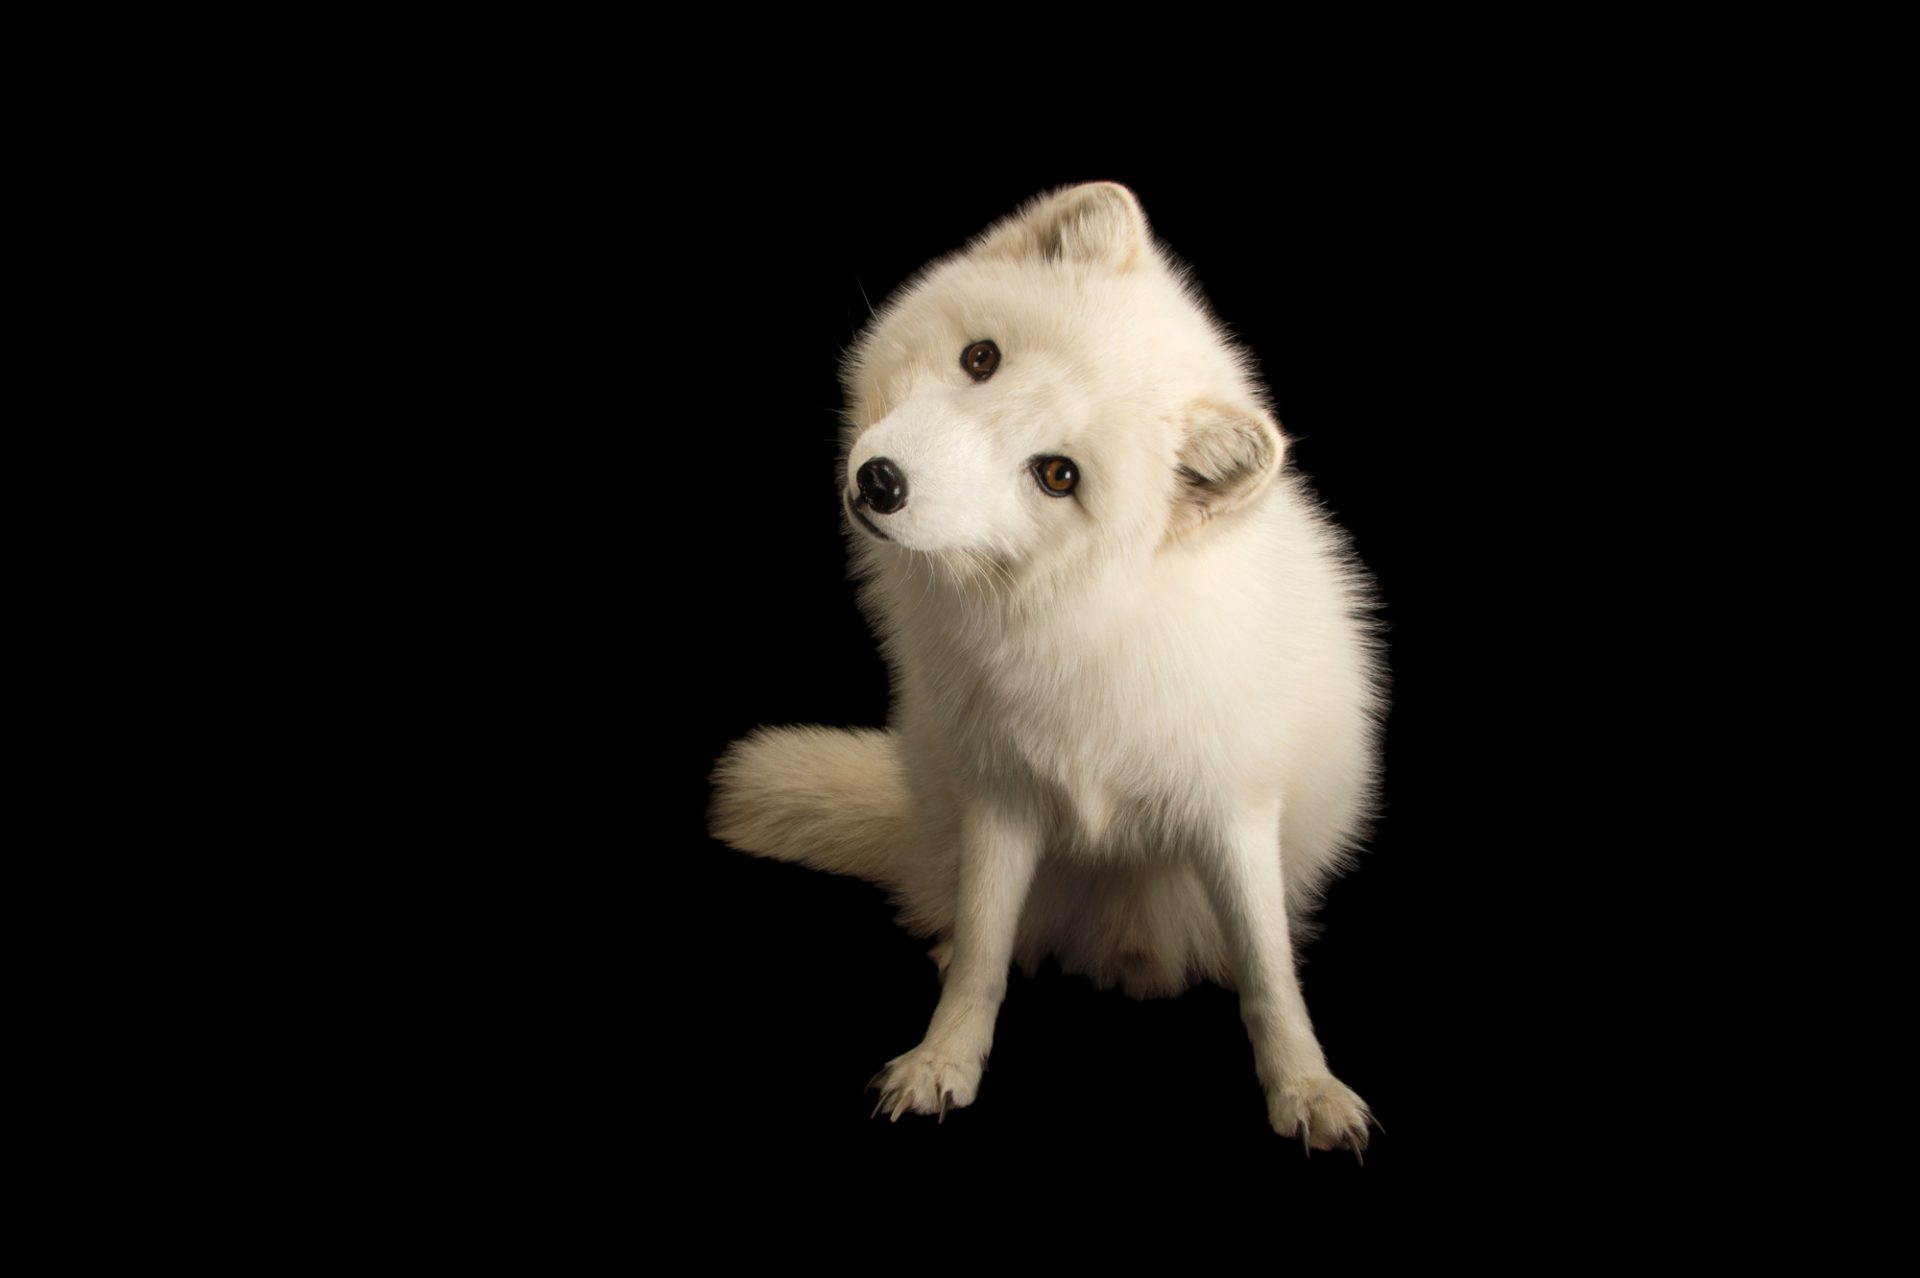 Picture of an Arctic fox, Vulpes lagopus, at the Great Bend Brit Spaugh Zoo in Great Bend, Kansas.